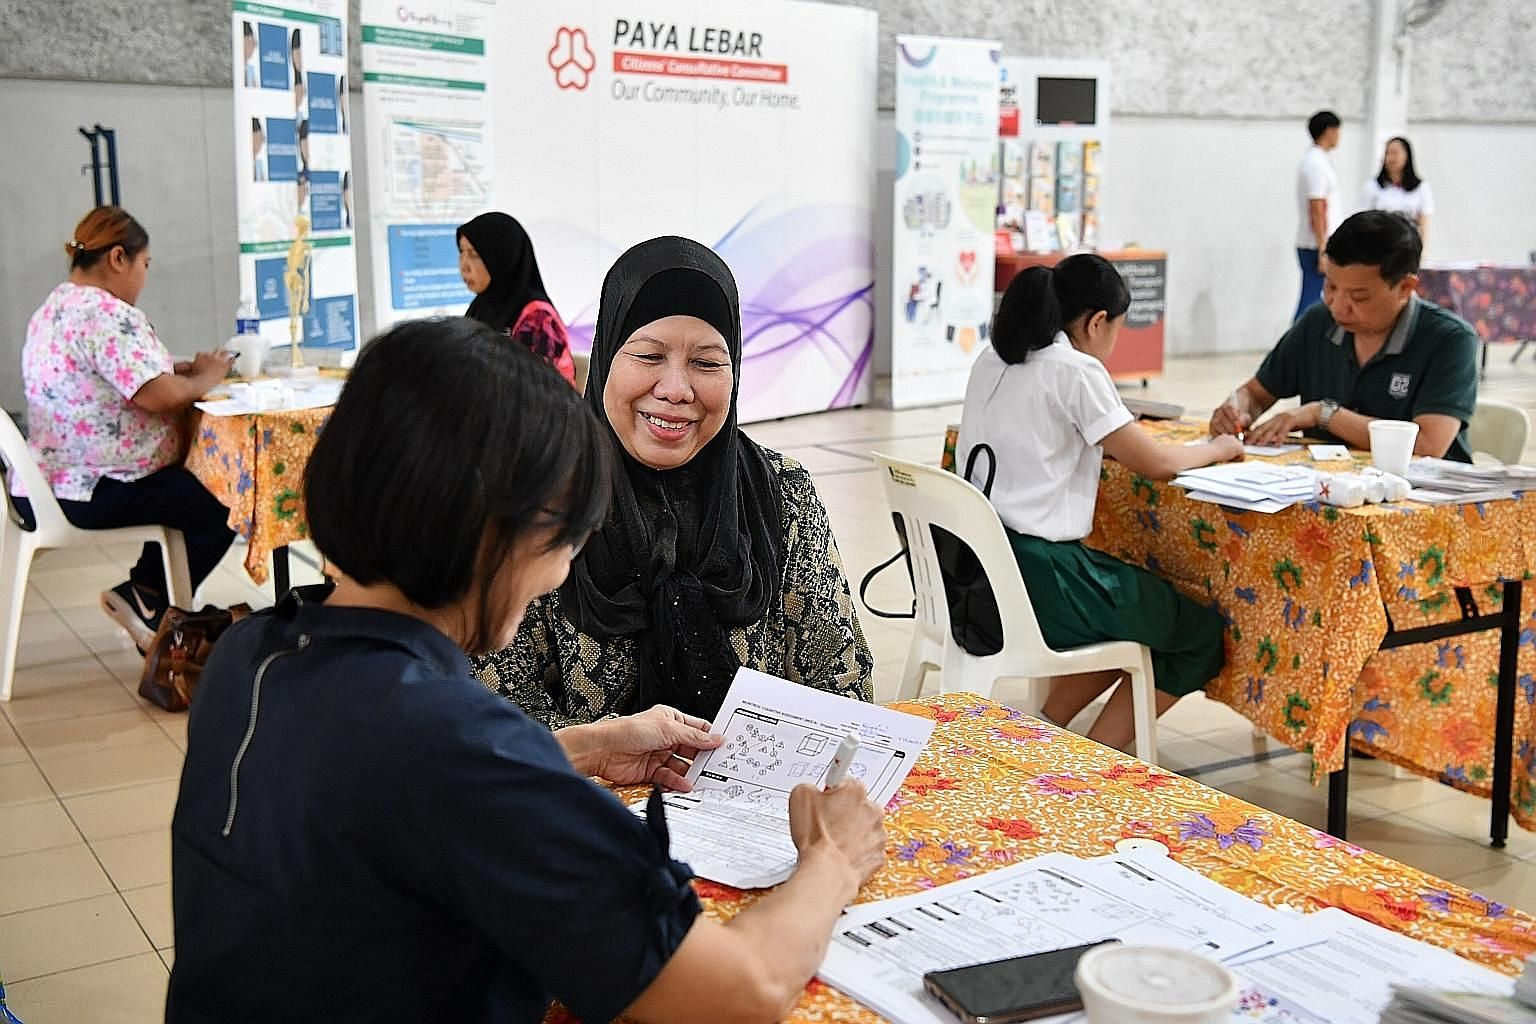 Residents (right) testing for cognitive impairment at Paya Lebar Kovan Community Club as part of the health and wellness programme yesterday. The programme is an initiative by Aljunied GRC Grassroots Organisation (Paya Lebar) and its adviser Alex Yeo